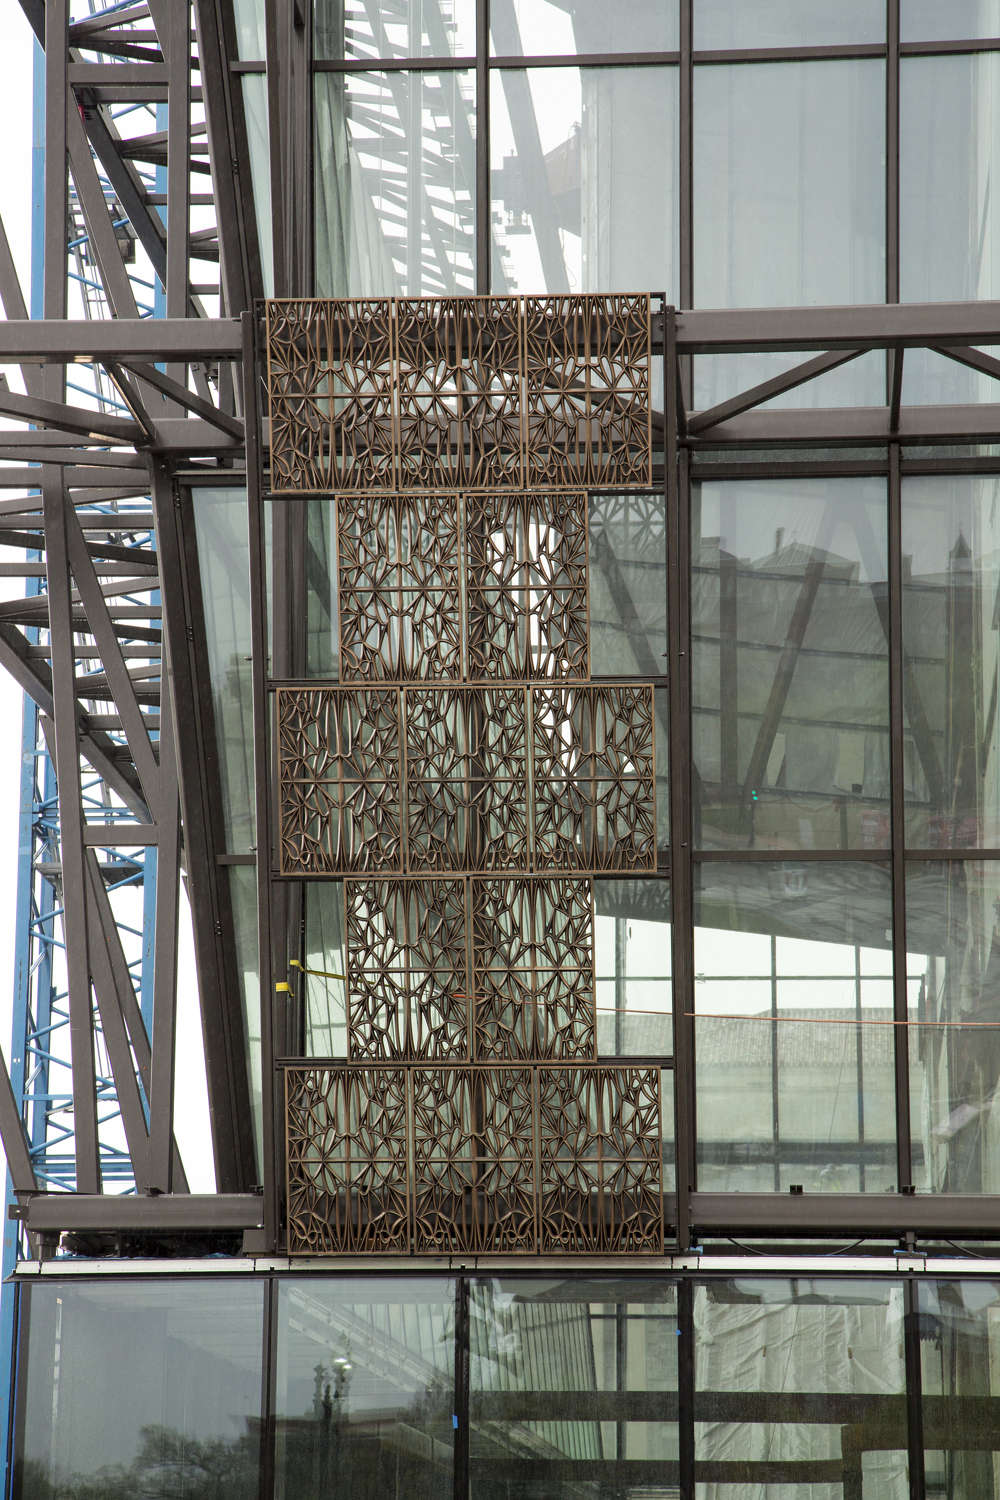 """Michael R. Barnes / Smithsonian Institution photo The first of 3,600 bronze-colored """"Corona"""" panels are installed on April 14, 2015. The """"Corona"""" is the three-tiered structure forming the exterior of the National Museum of African American History and Culture."""